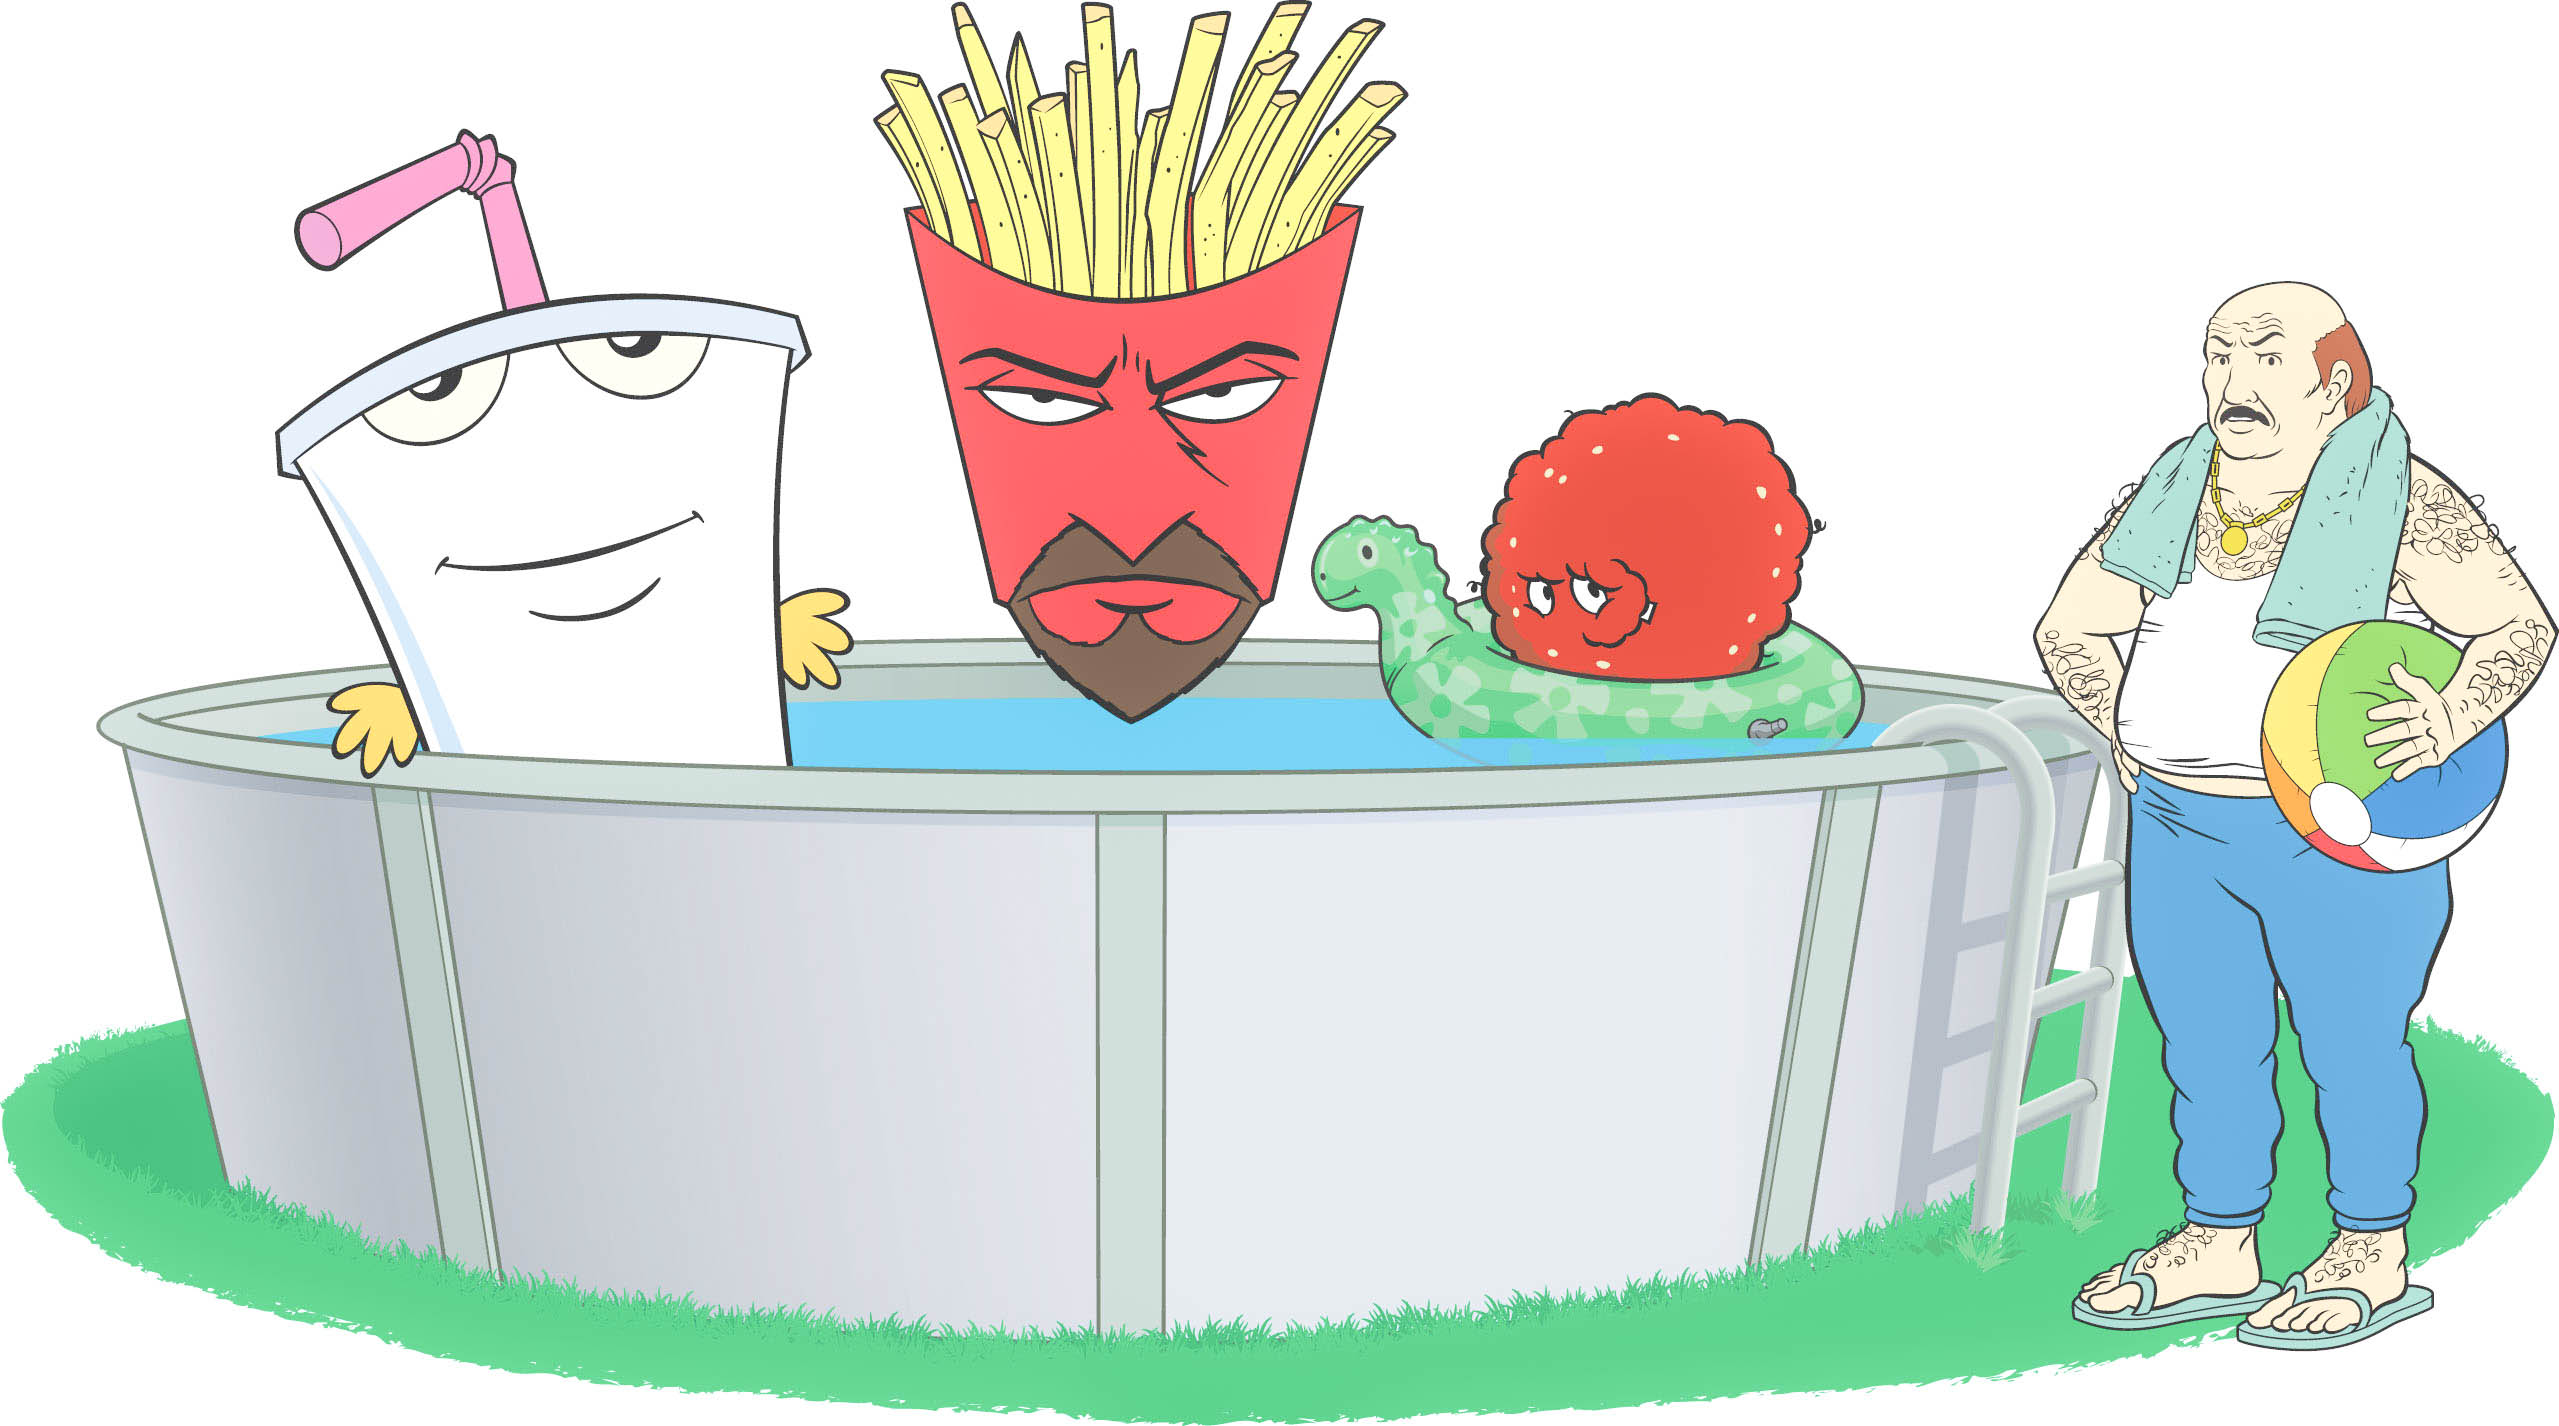 Circuit schematic aqua teen hunger force